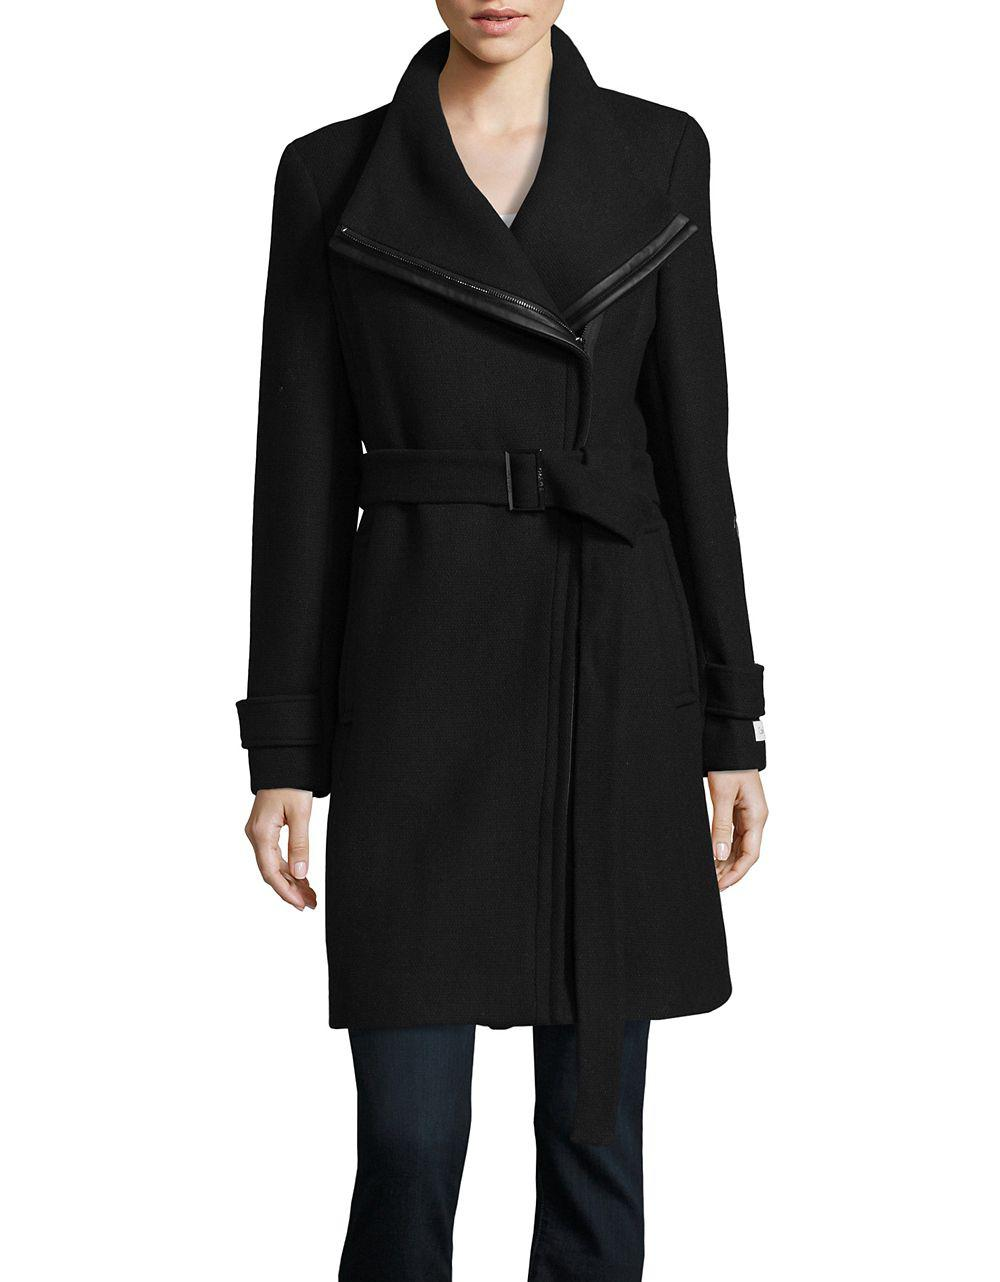 CALVIN KLEIN 205W39NYC. Women's Black Wrap Walker Coat